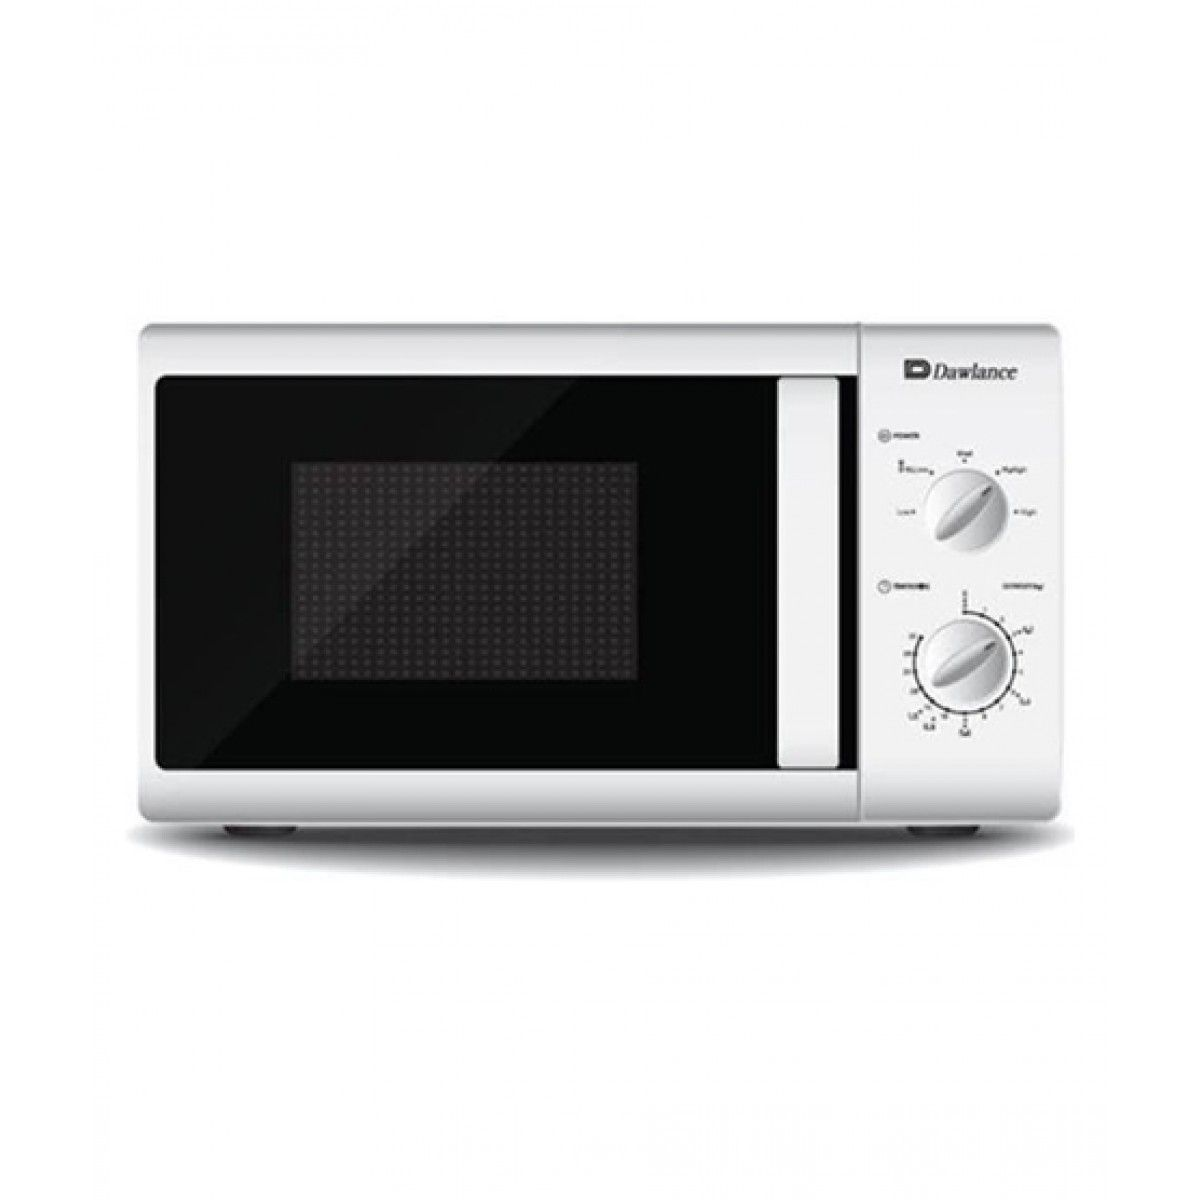 Dawlance DW-210-S Heating Series Microwave Oven 20 Ltr